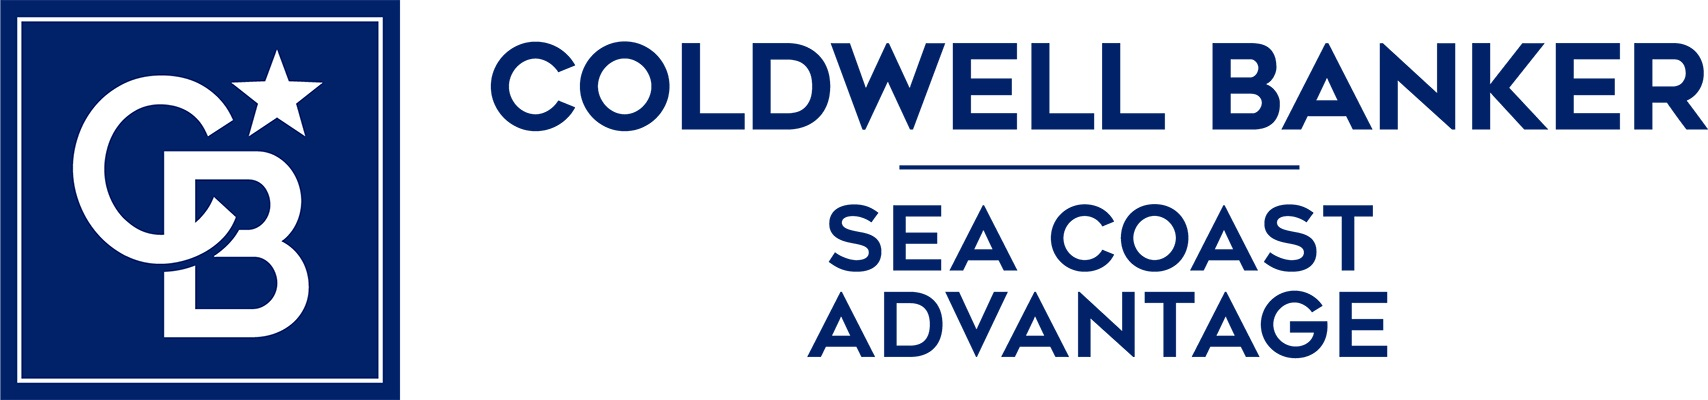 Brittany Denny - Coldwell Banker Sea Coast Advantage Realty